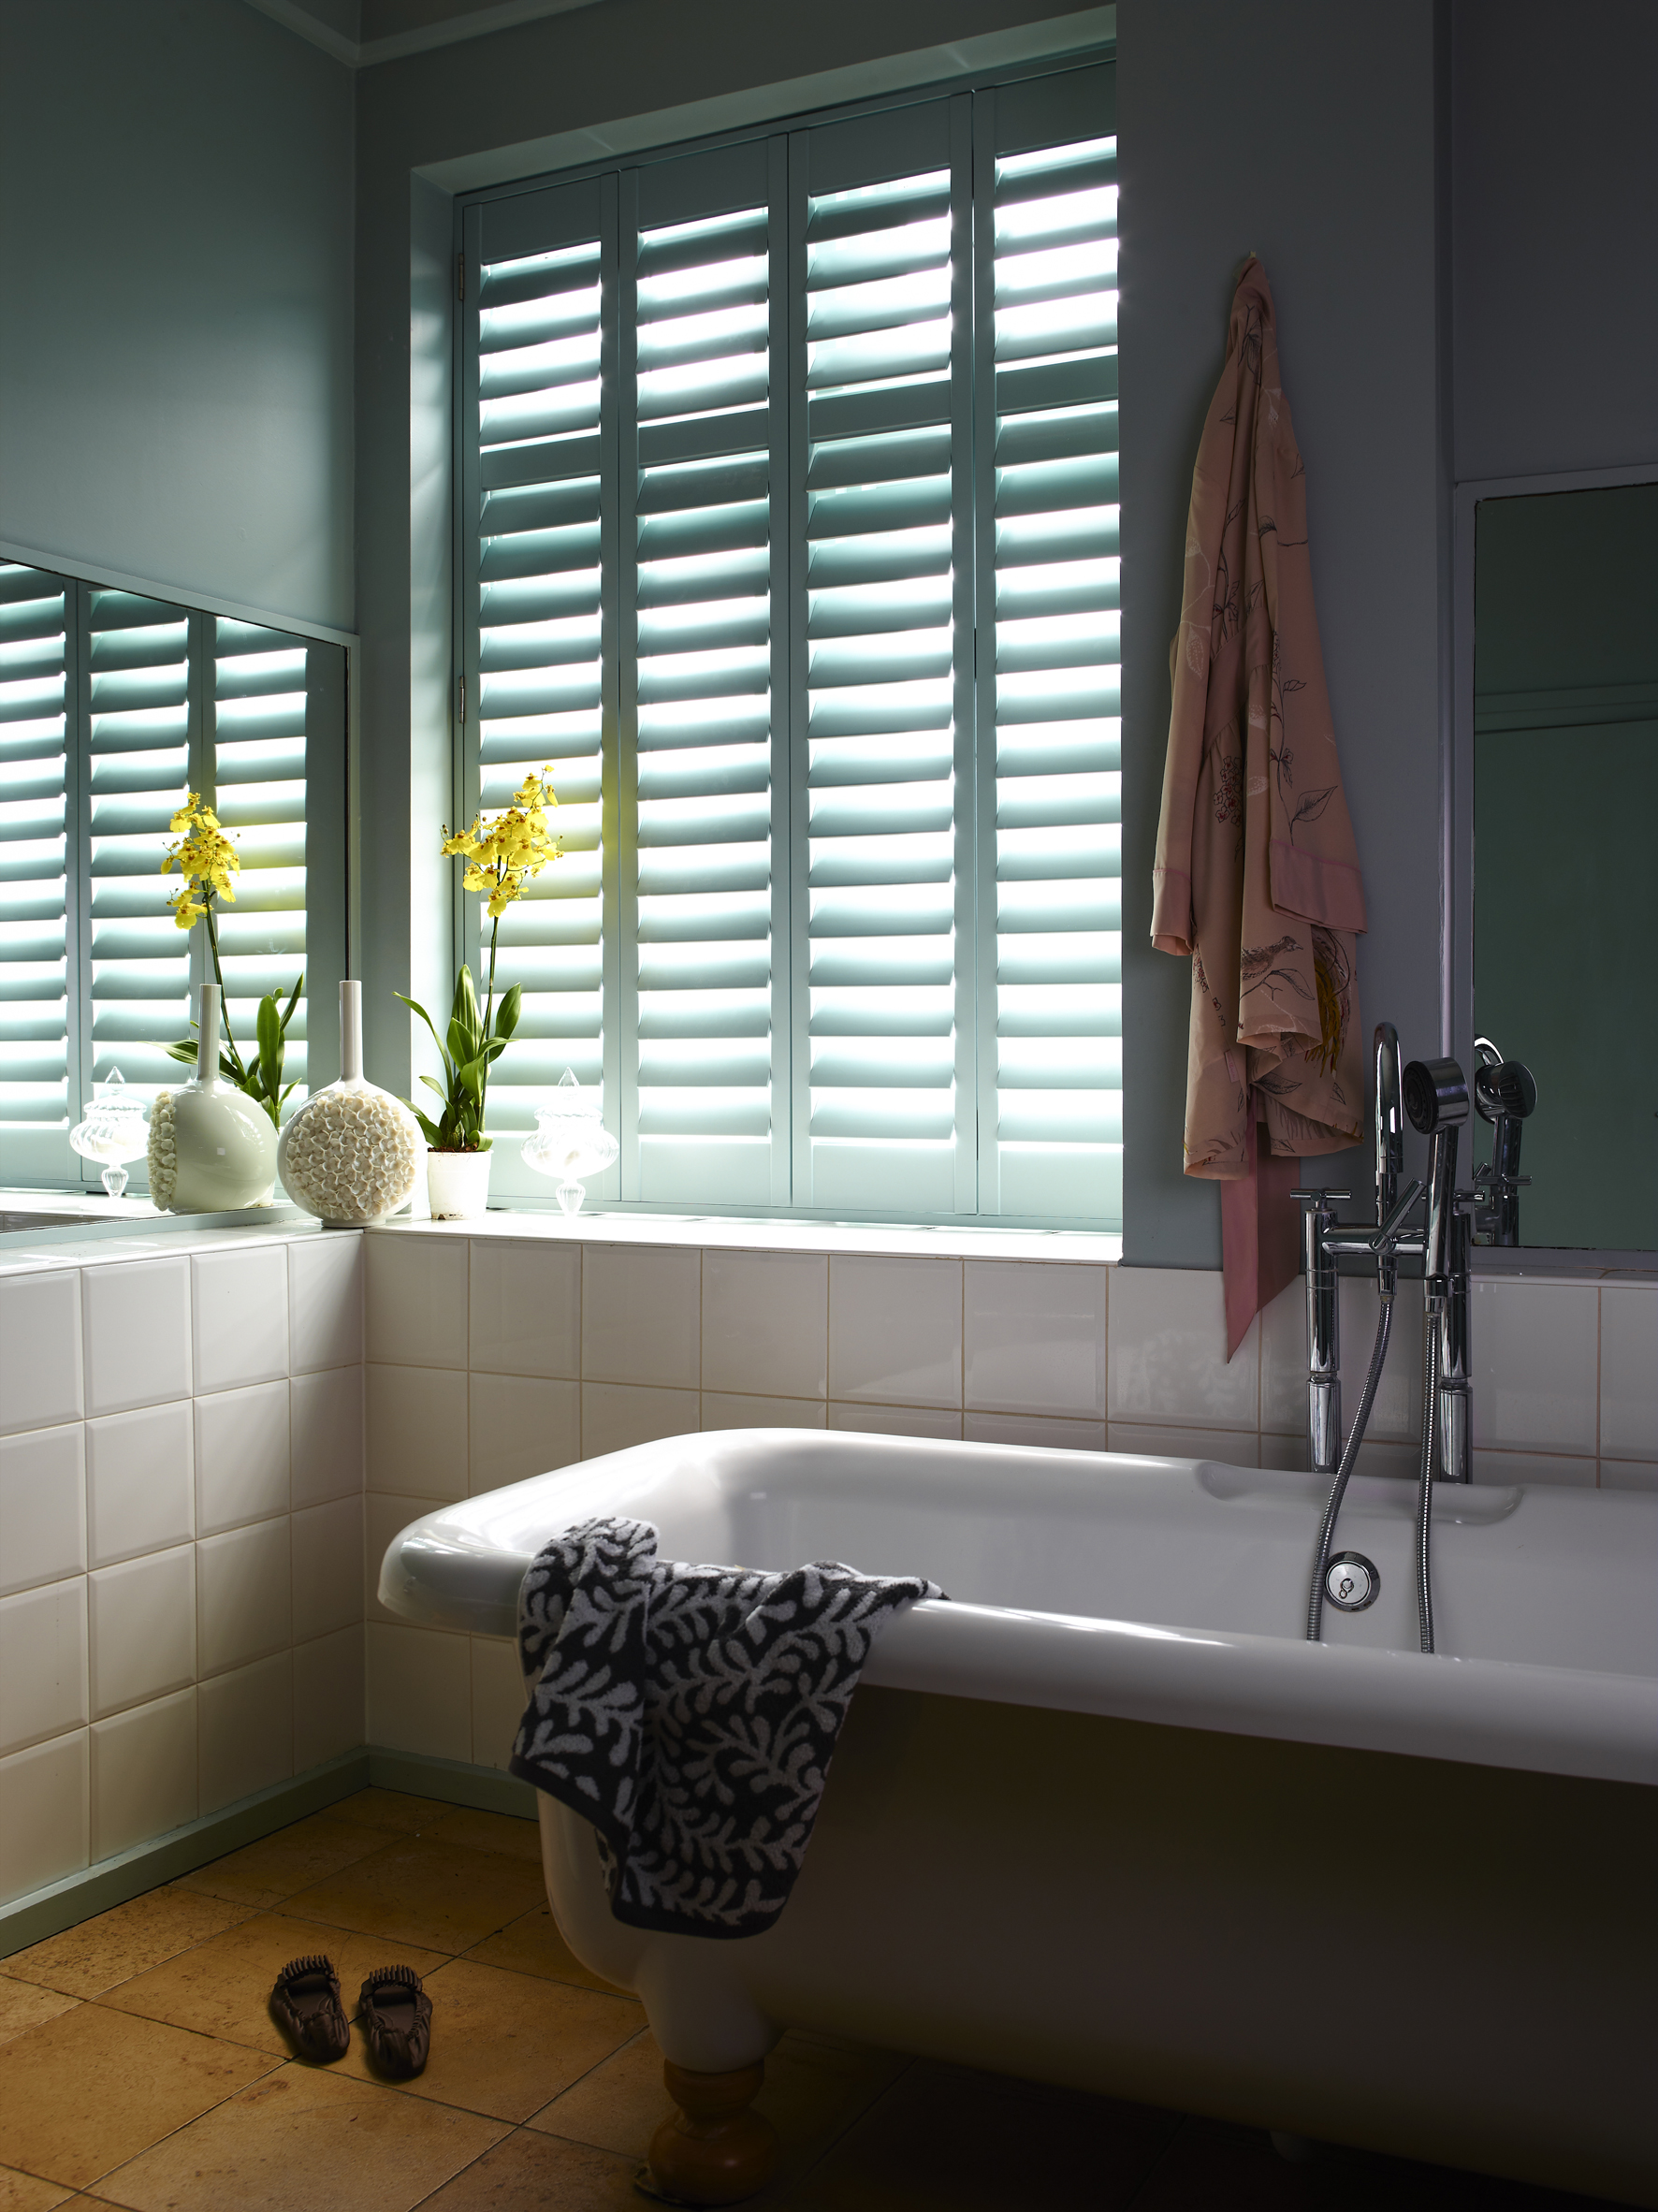 Choosing Waterproof Shutters